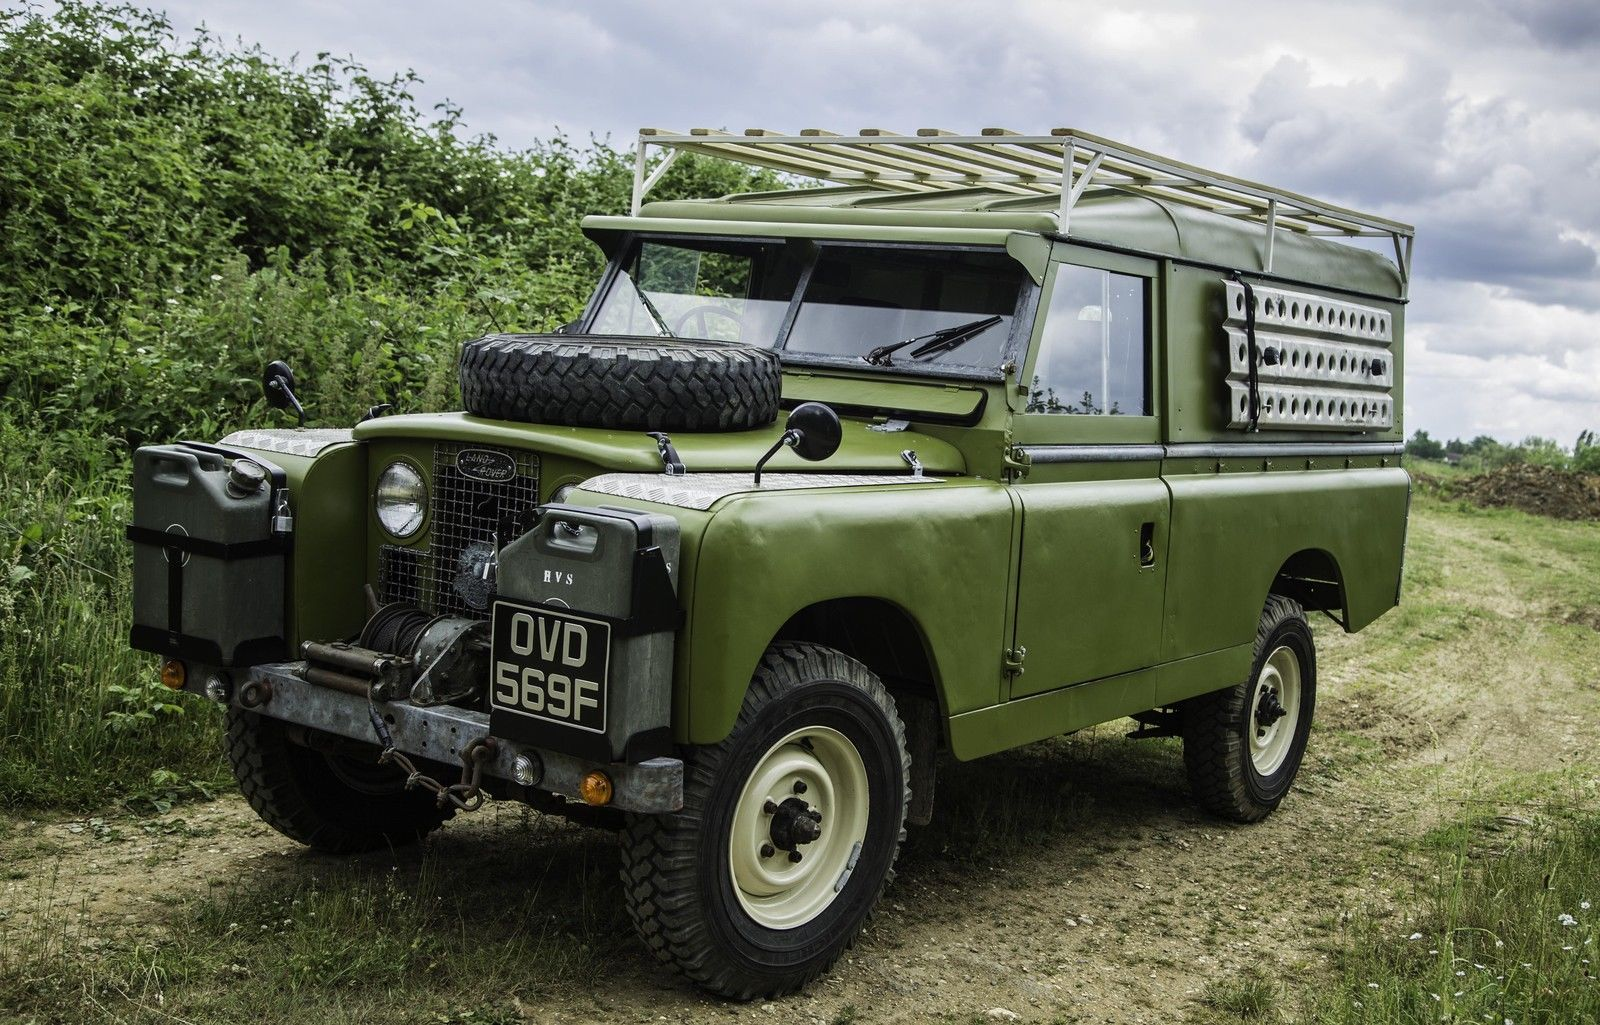 Amazing Series 2 Land Rover for sale ! http://www.ebay.co.uk/itm ...